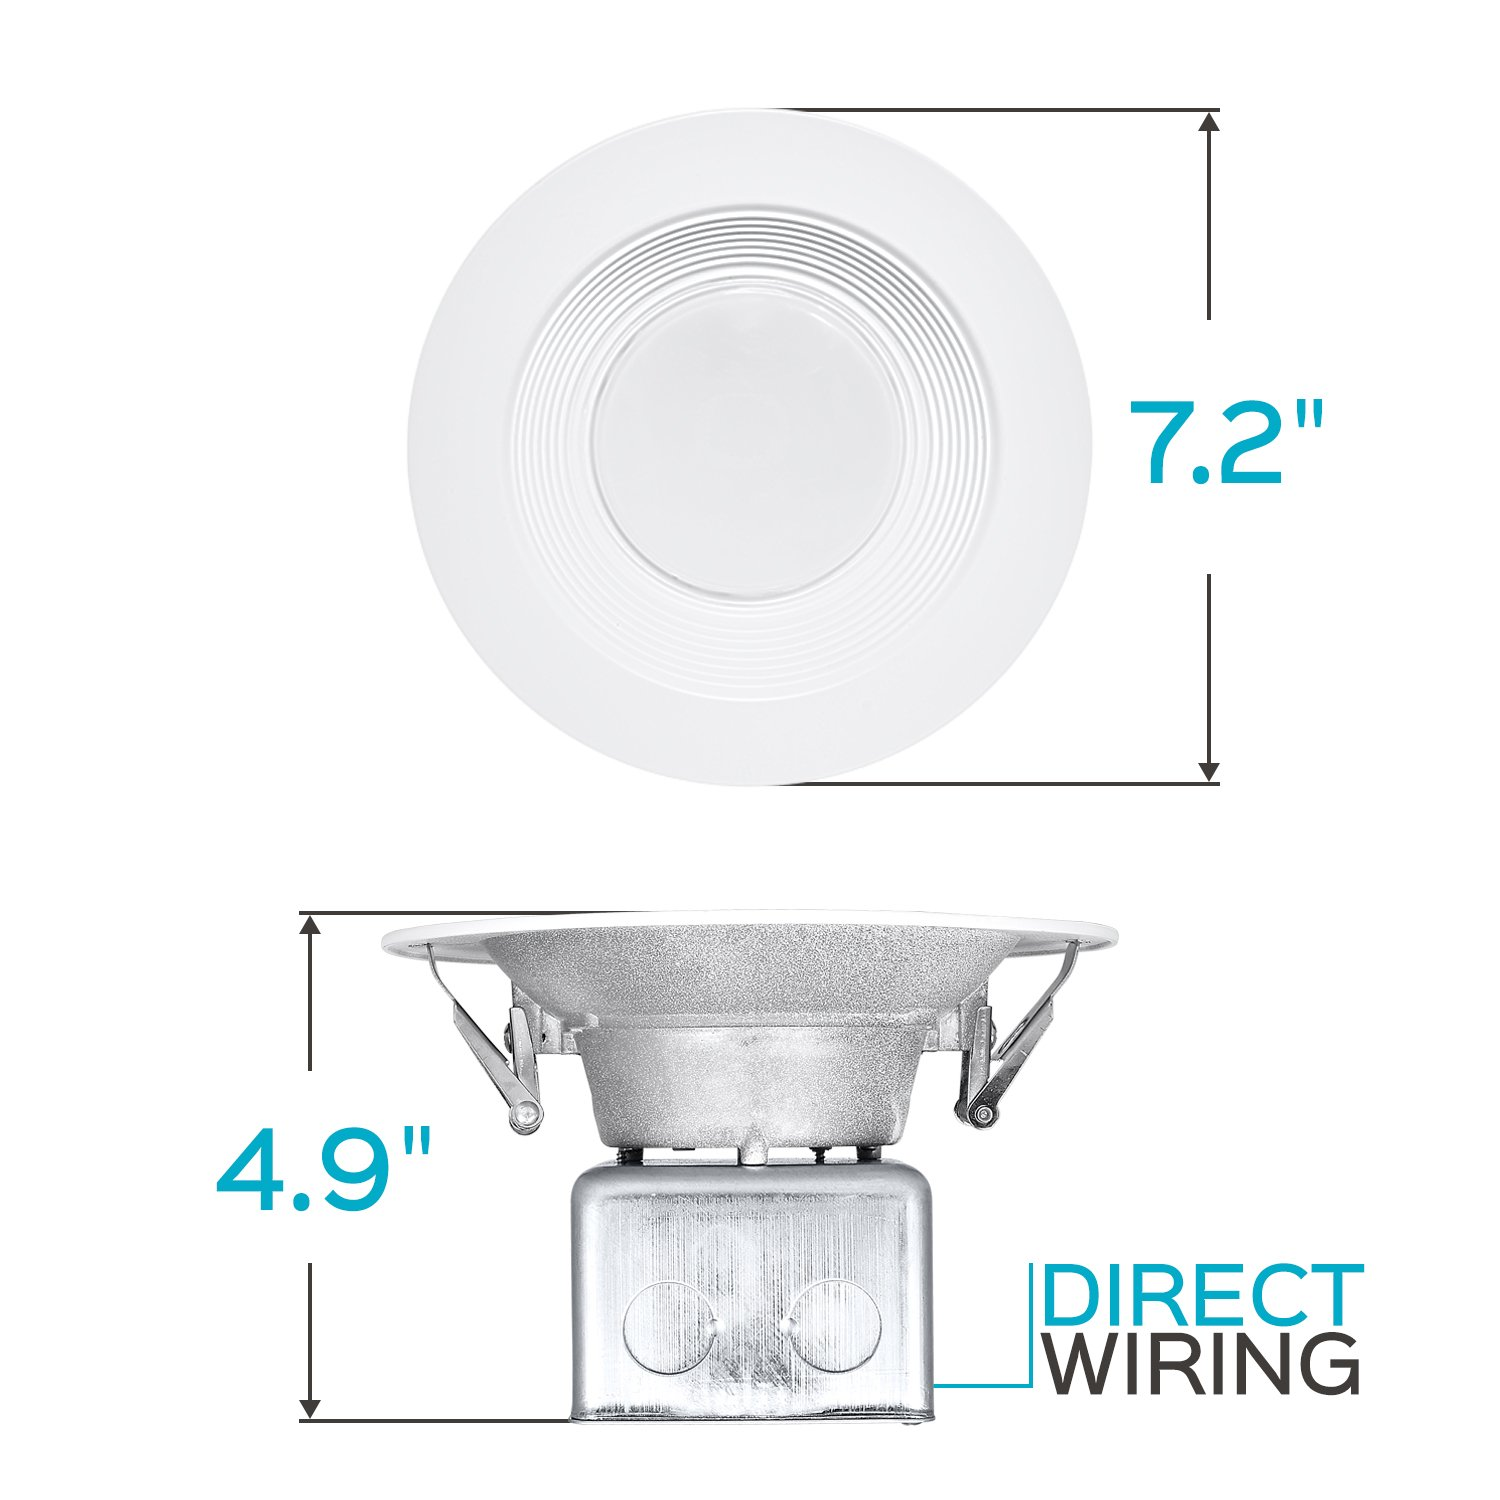 Luxrite 5/6 Inch LED Recessed Light with Junction Box, 15W, 5000K Bright White, Dimmable Airtight Downlight, 1100 Lumens, Energy Star, IC & Wet Rated, 120V - 277V, Recessed Lighting Kit (12 Pack) by LUXRITE (Image #7)